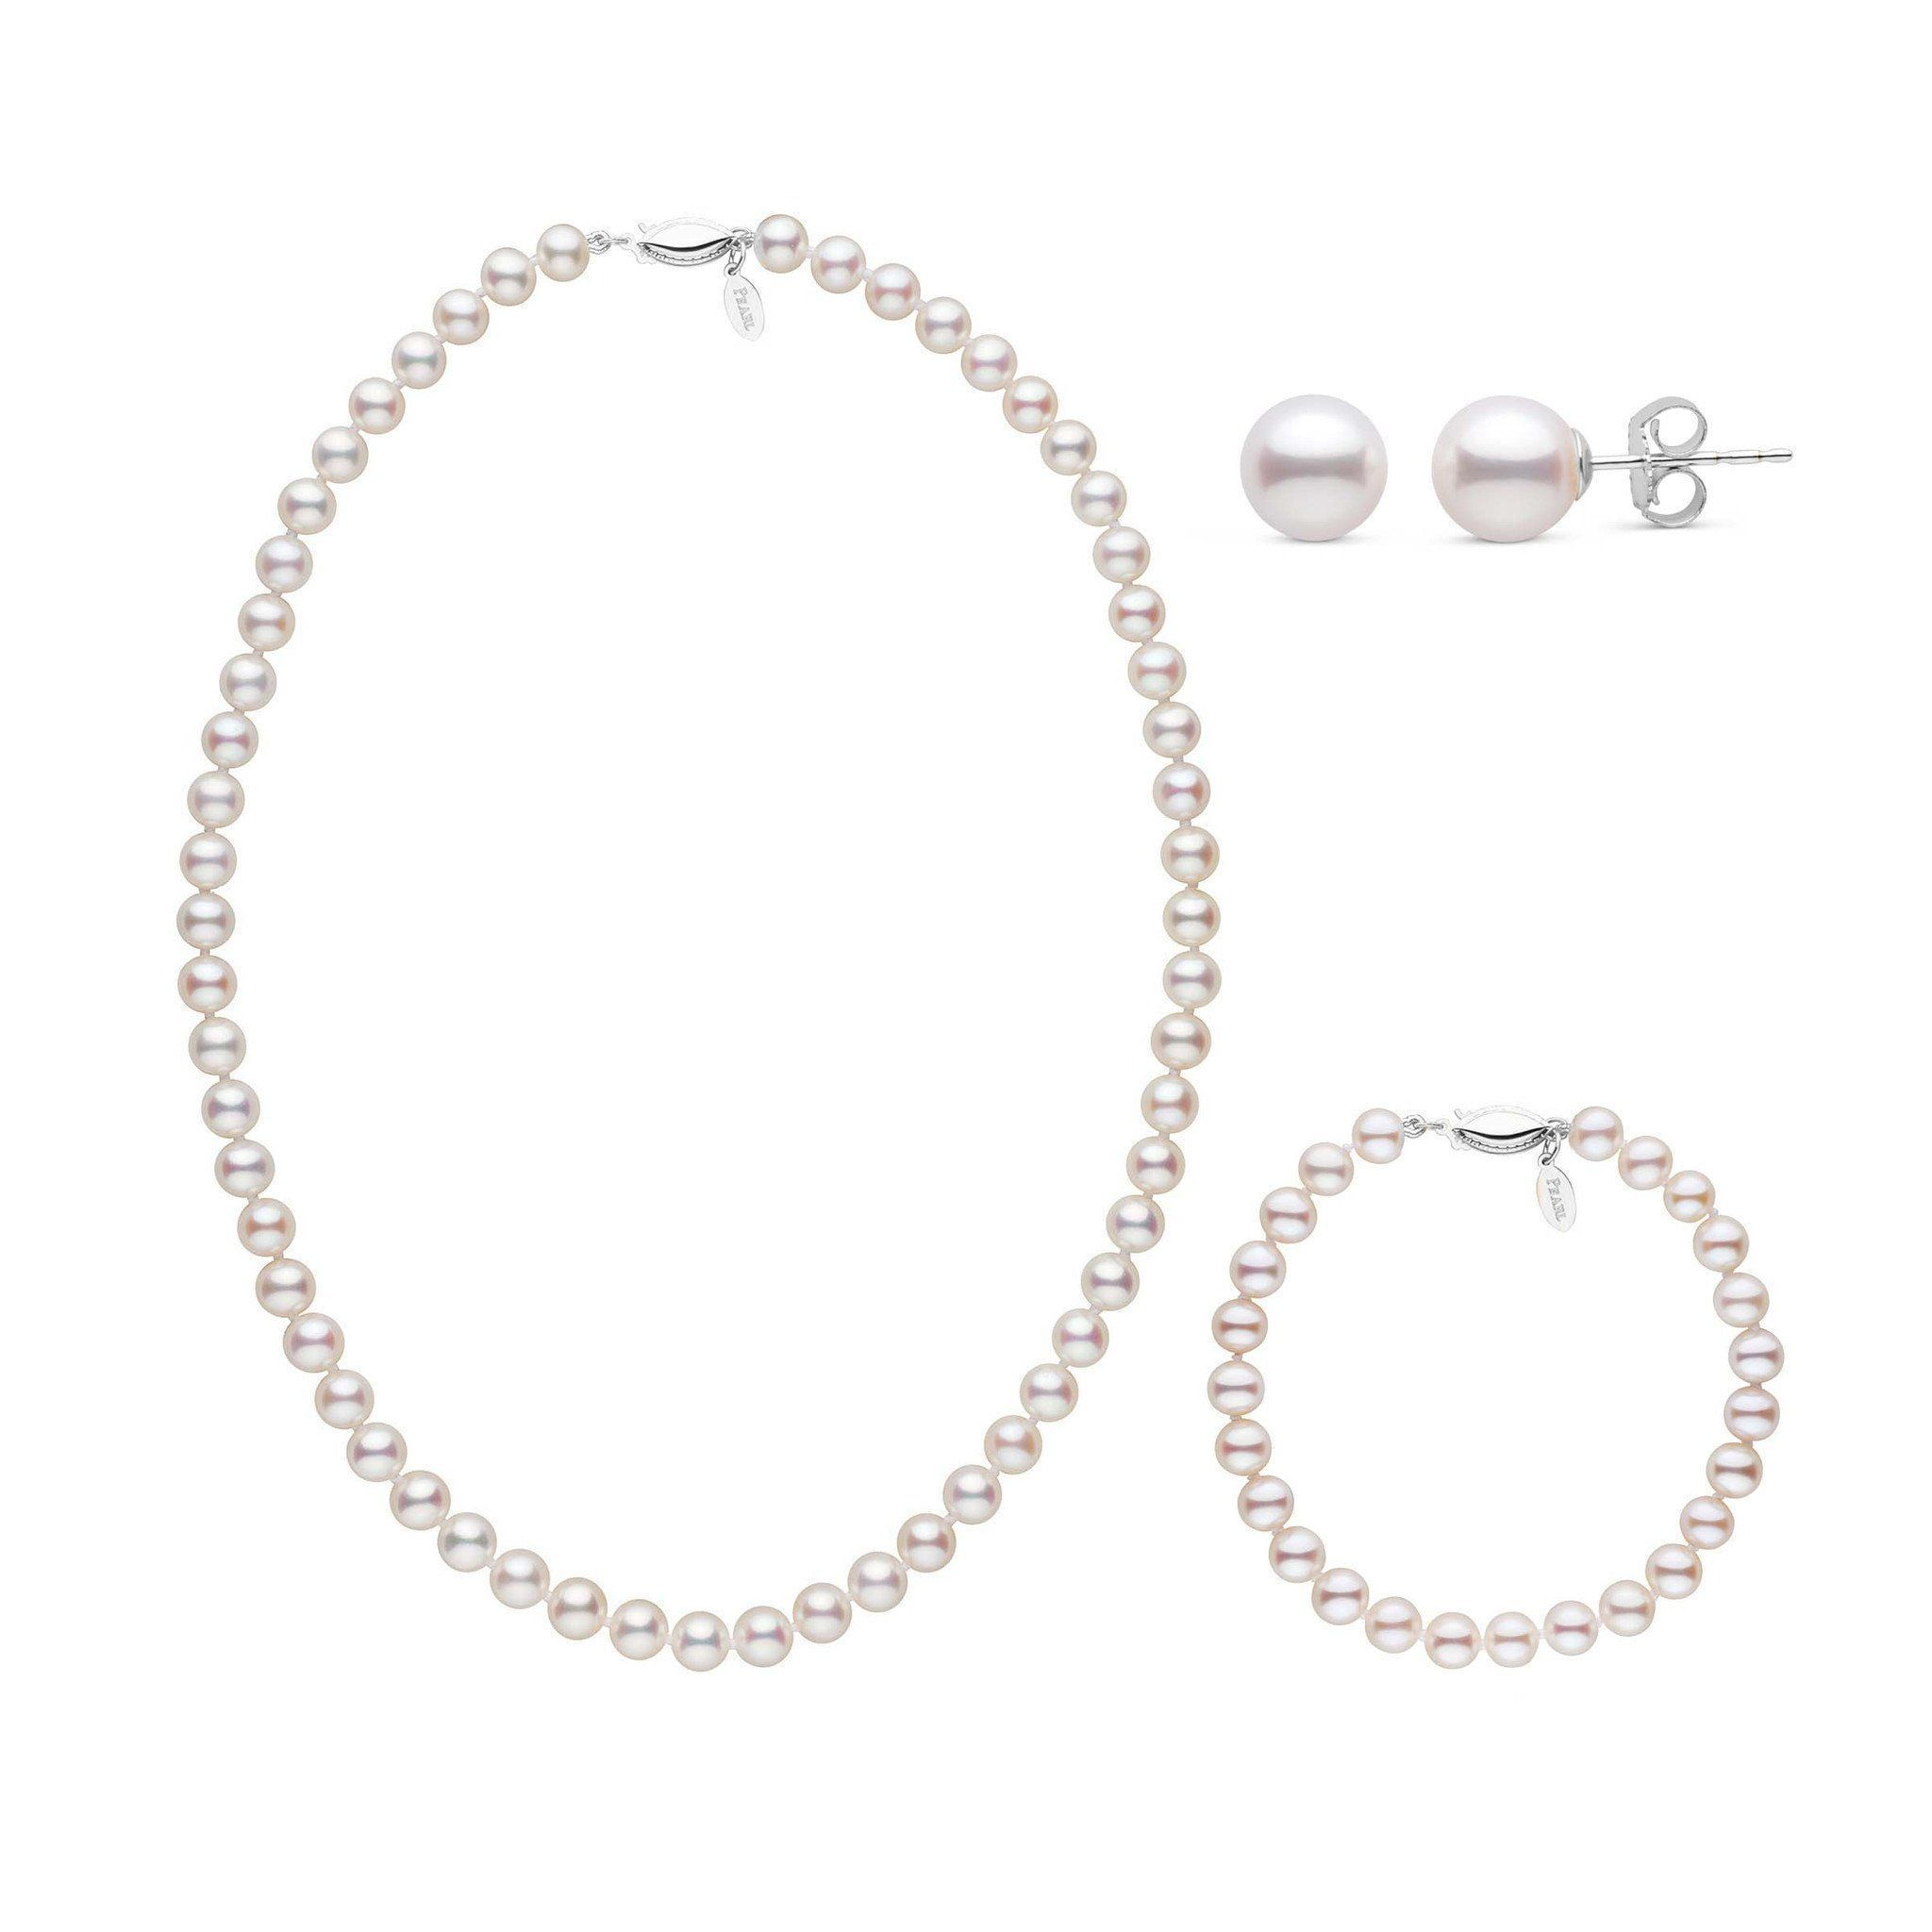 16 Inch 3 Piece 6.5-7.0 mm White Freshadama Freshwater Pearl Set